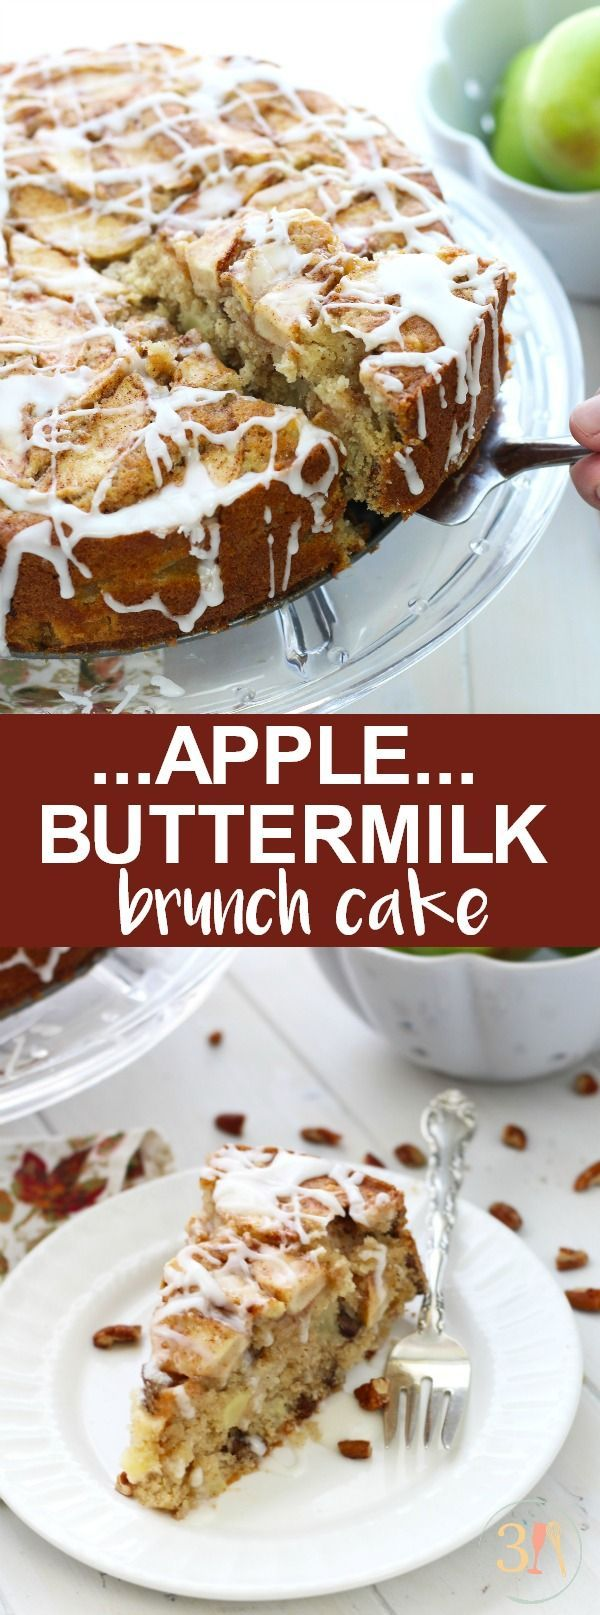 This Apple Buttermilk Brunch Cake Has Fresh Granny Smith Apples And Is Served Warm With A Butter Granny Smith Apples Recipes Apple Brunch Recipes Apple Recipes